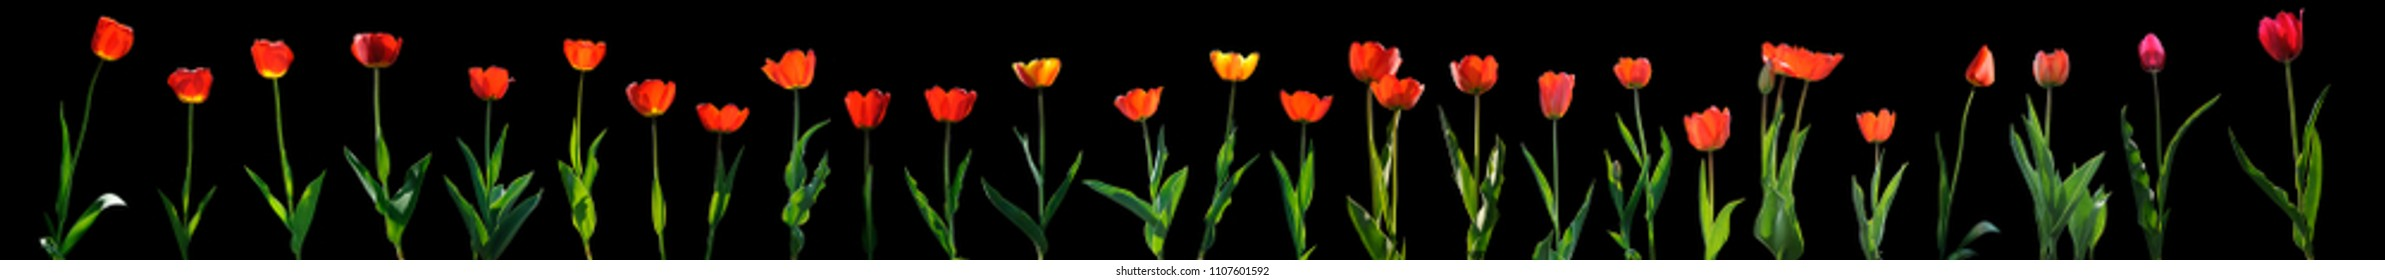 Flowers tulips carved on a black background, Panorama.